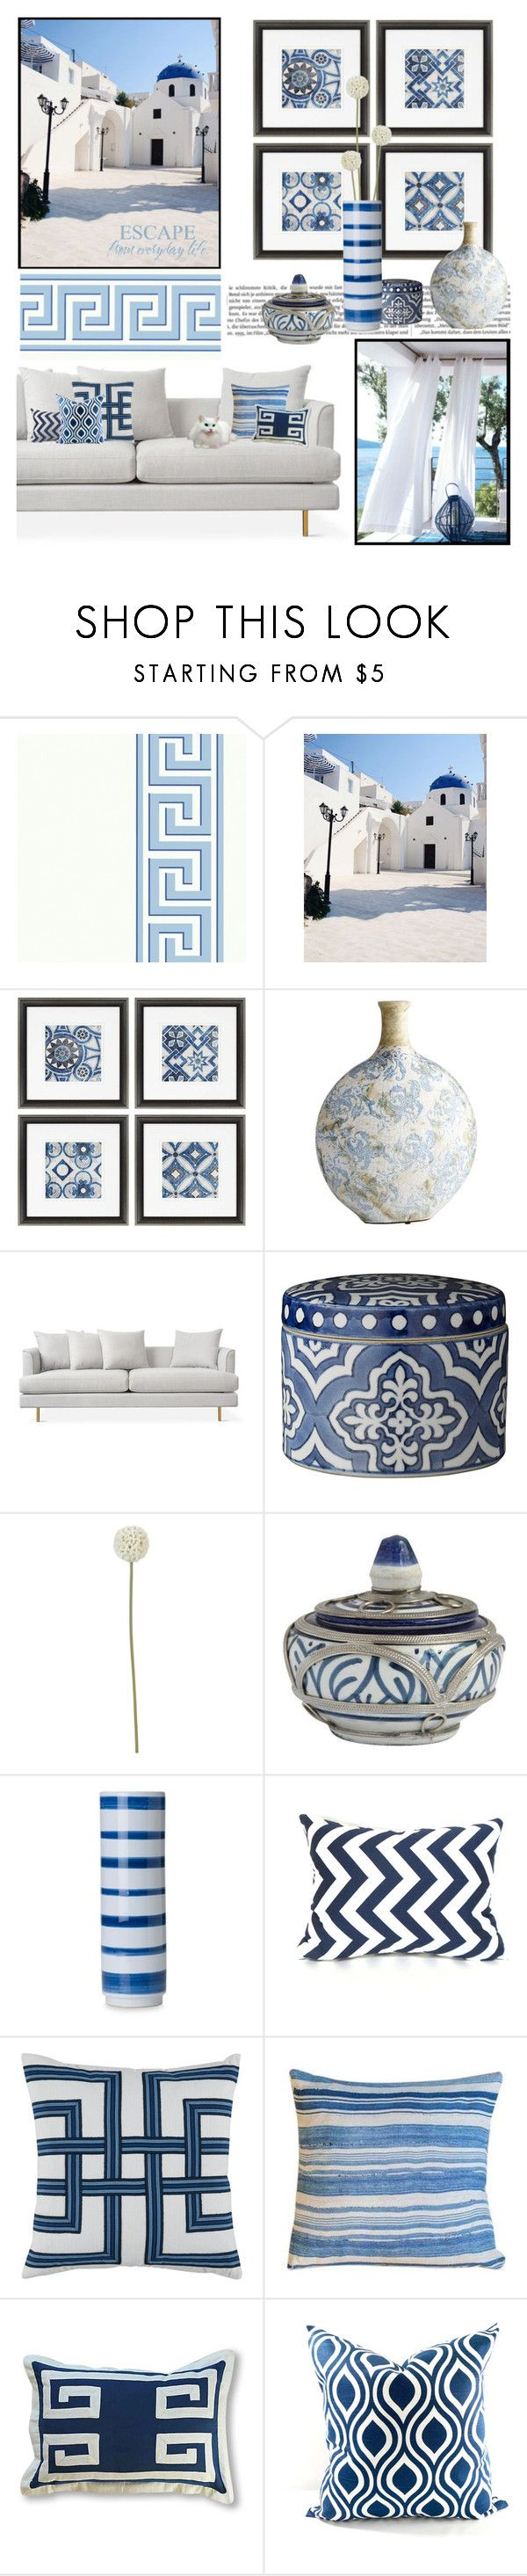 """Greek Isles Inspired . . . ."" by kateo ❤ liked on Polyvore featuring interior, interiors, interior design, home, home decor, interior decorating, GAS Jeans, Home Decorators Collection, Cyan Design and Lene Bjerre"